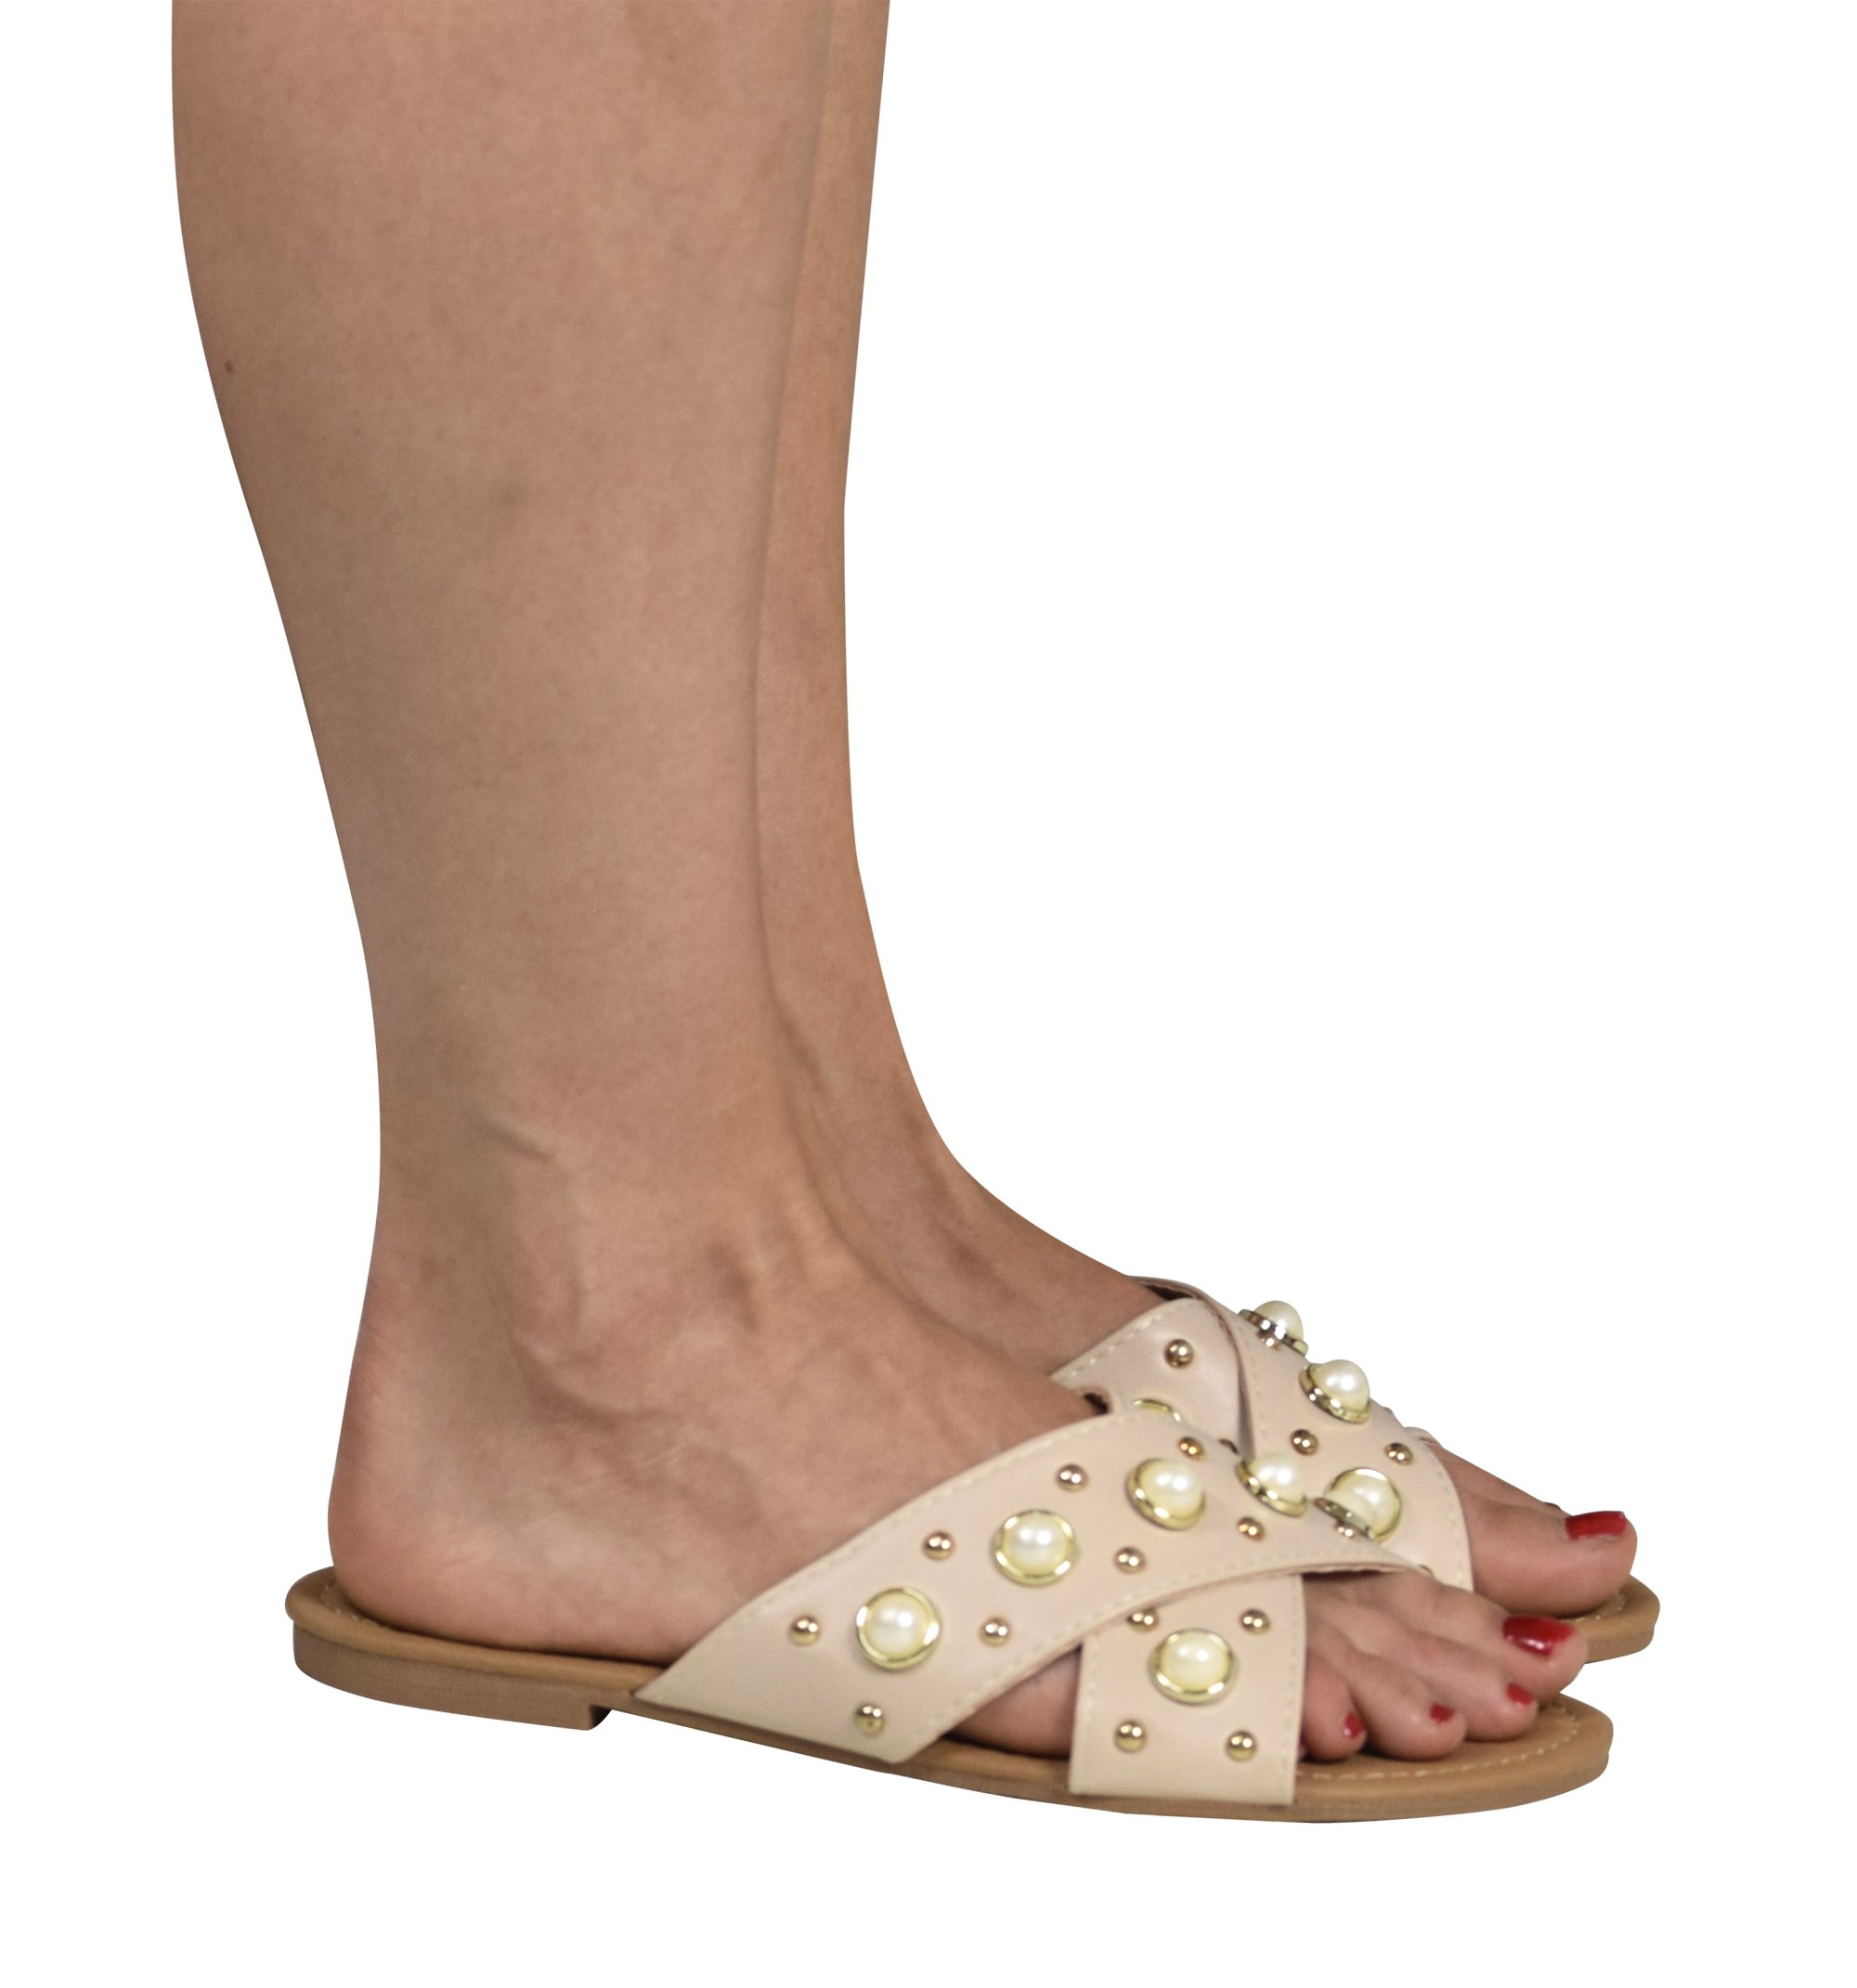 Peach Couture Gia Beaded Pearl Studded Slip On Flats Slides Sandals